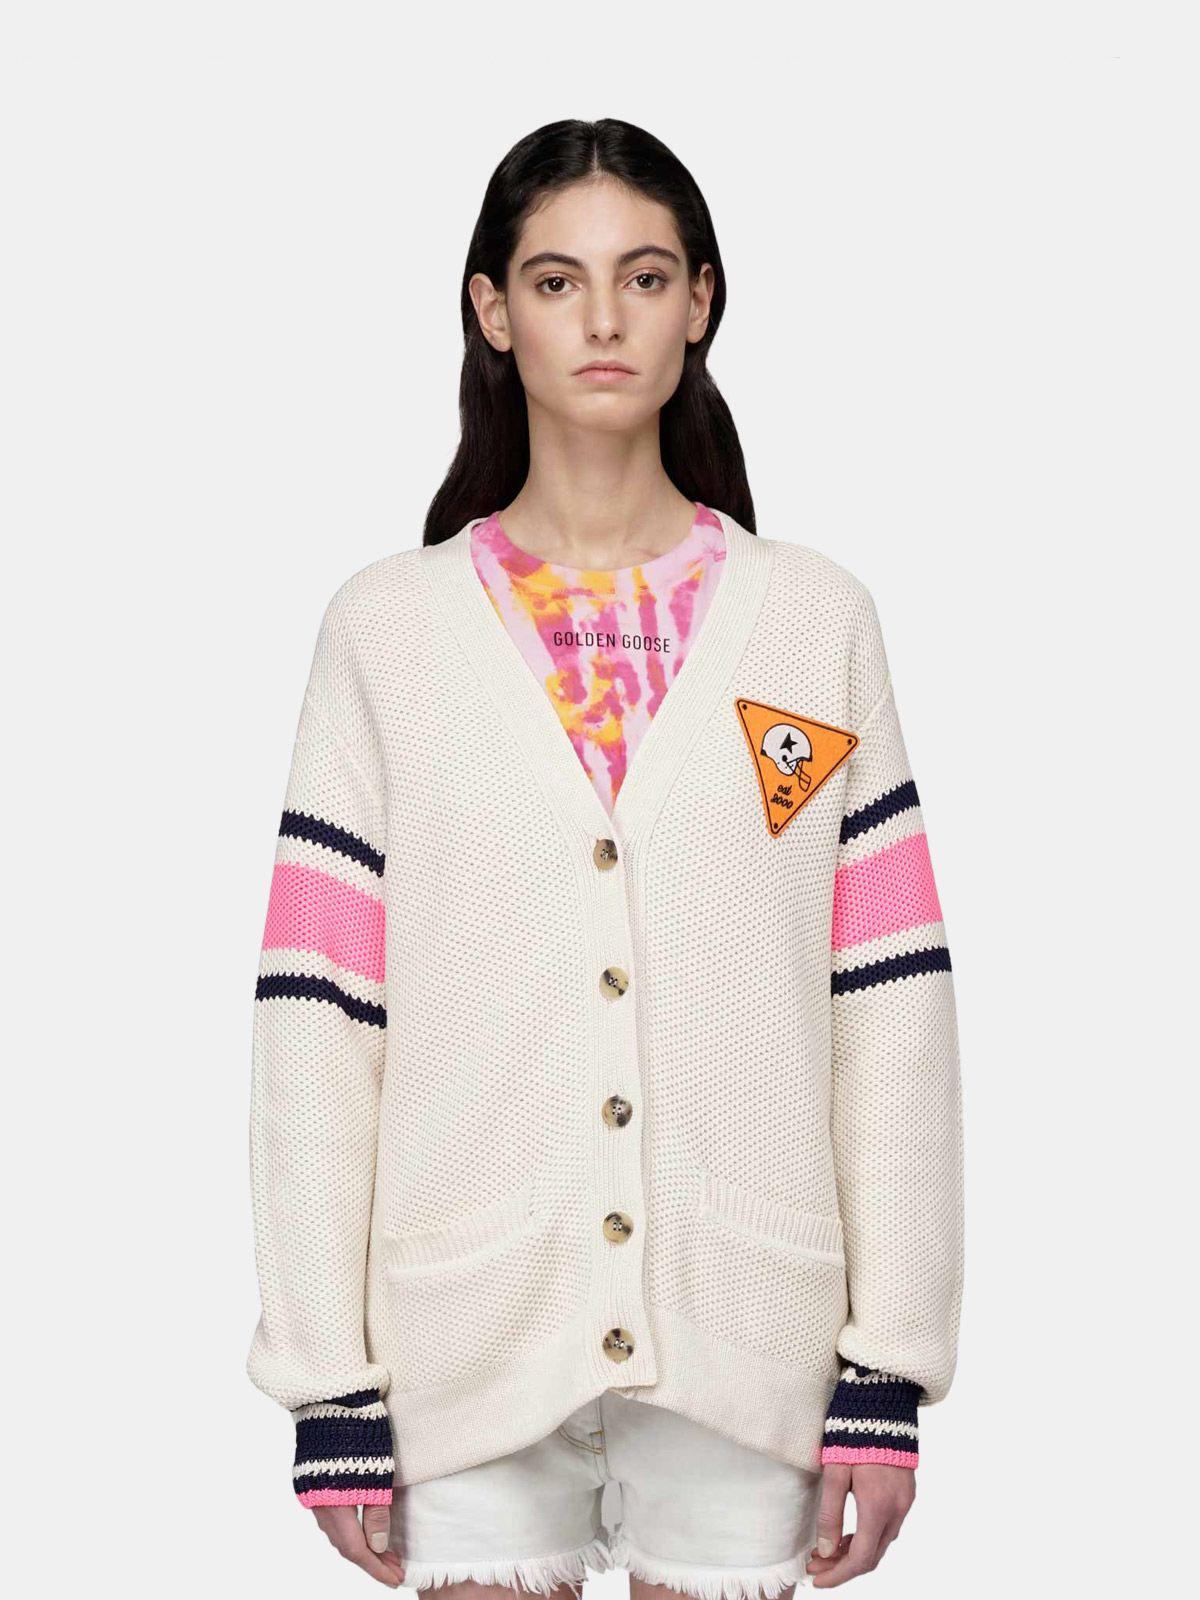 Katy cardigan in cotton piquet with embroidery on the back